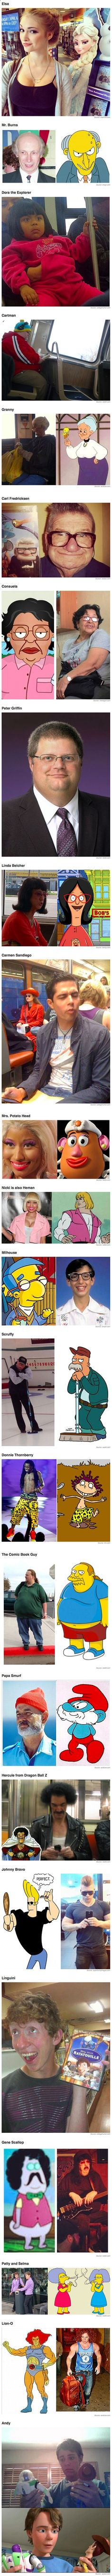 Here are some real people who look just like famous cartoon characters.